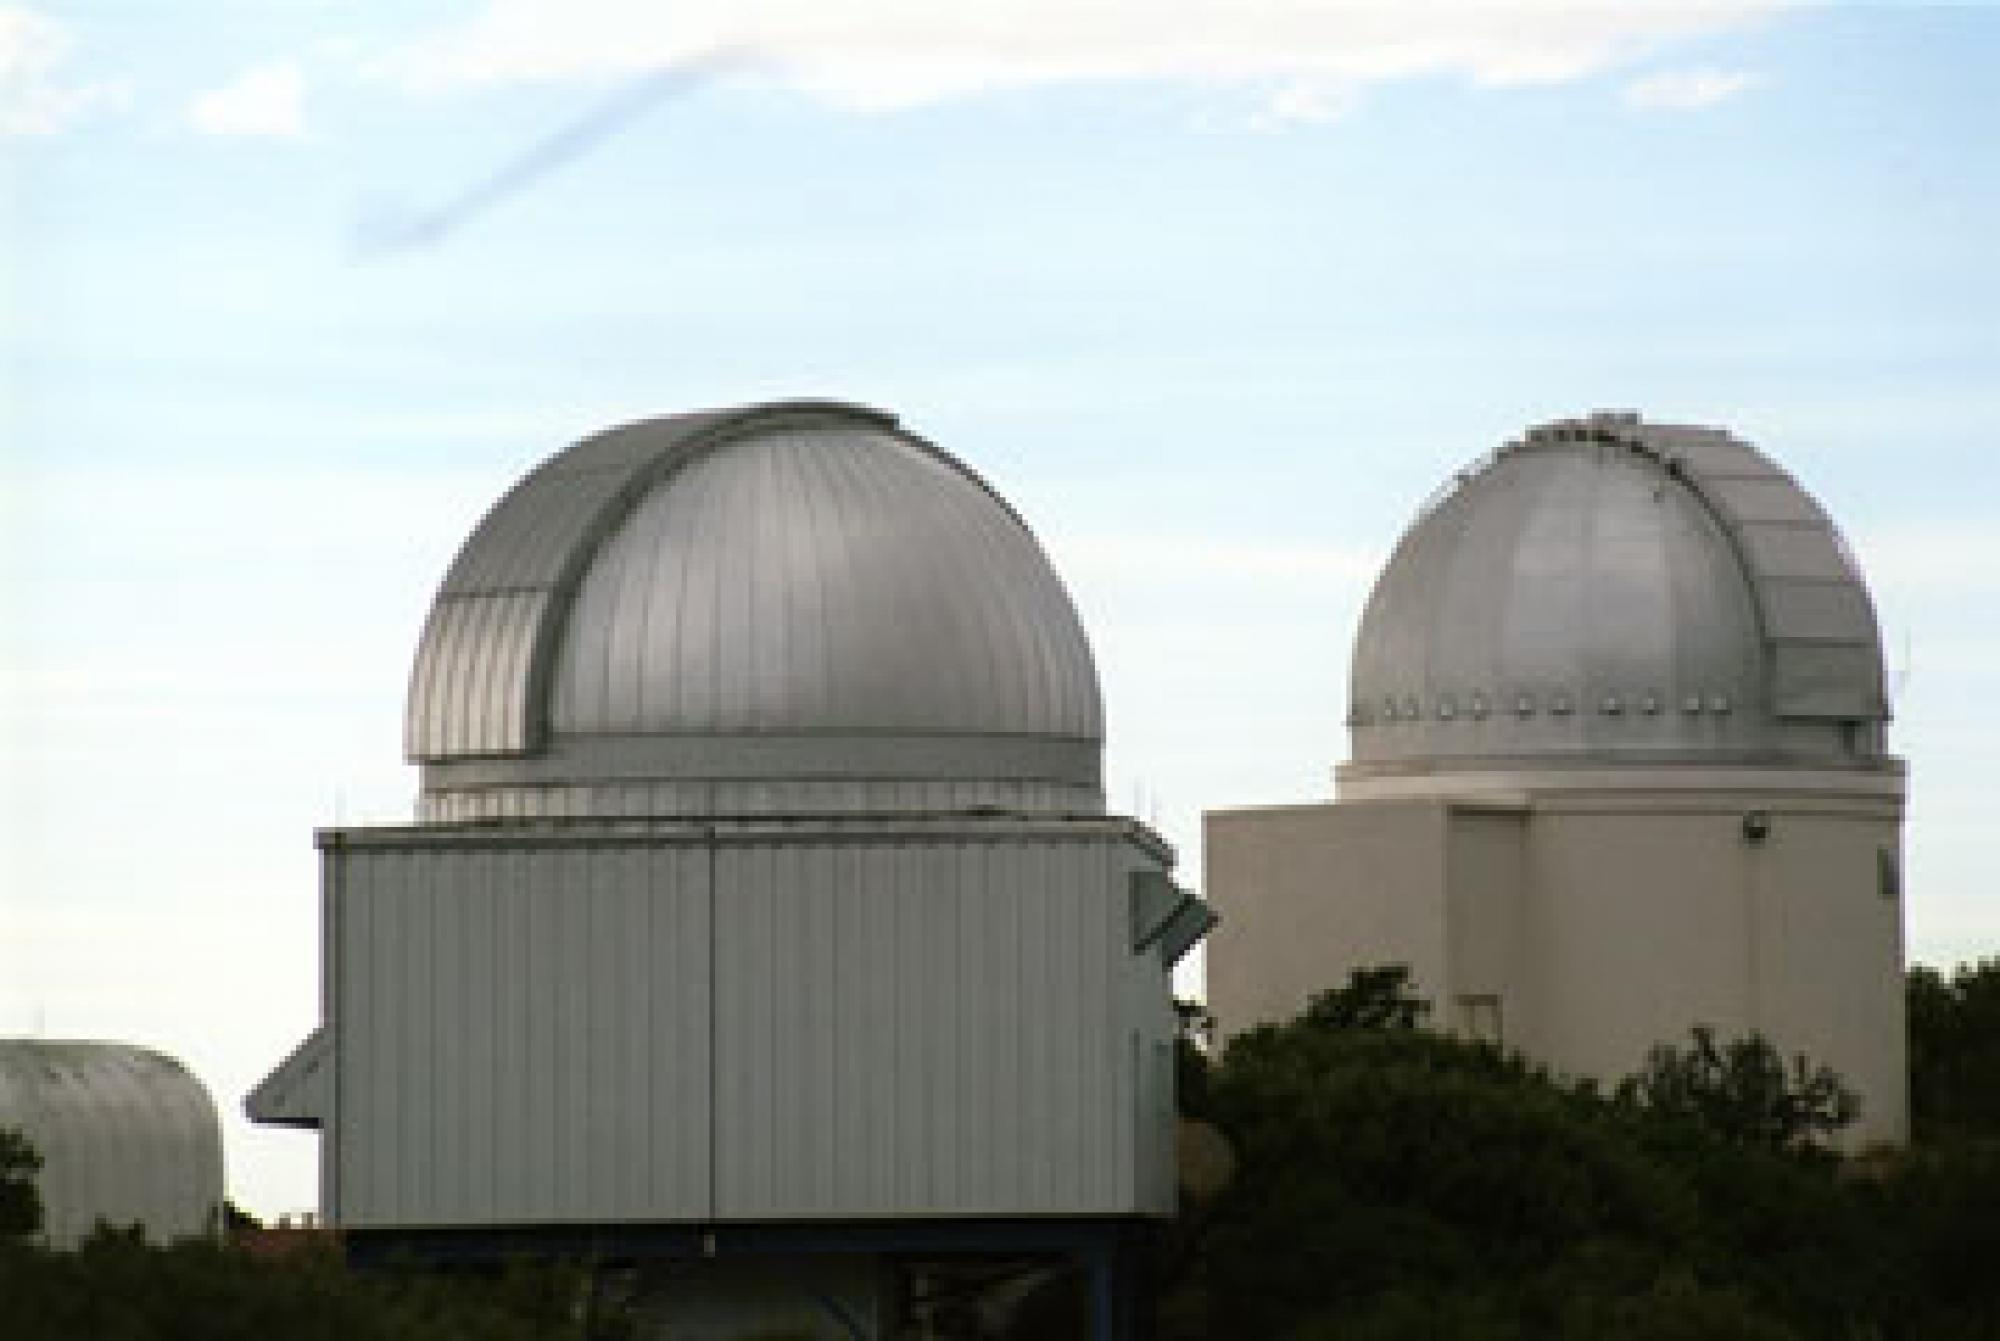 The Spacewatch telescopes. The 0.9-meter  telescope is the one on the right.